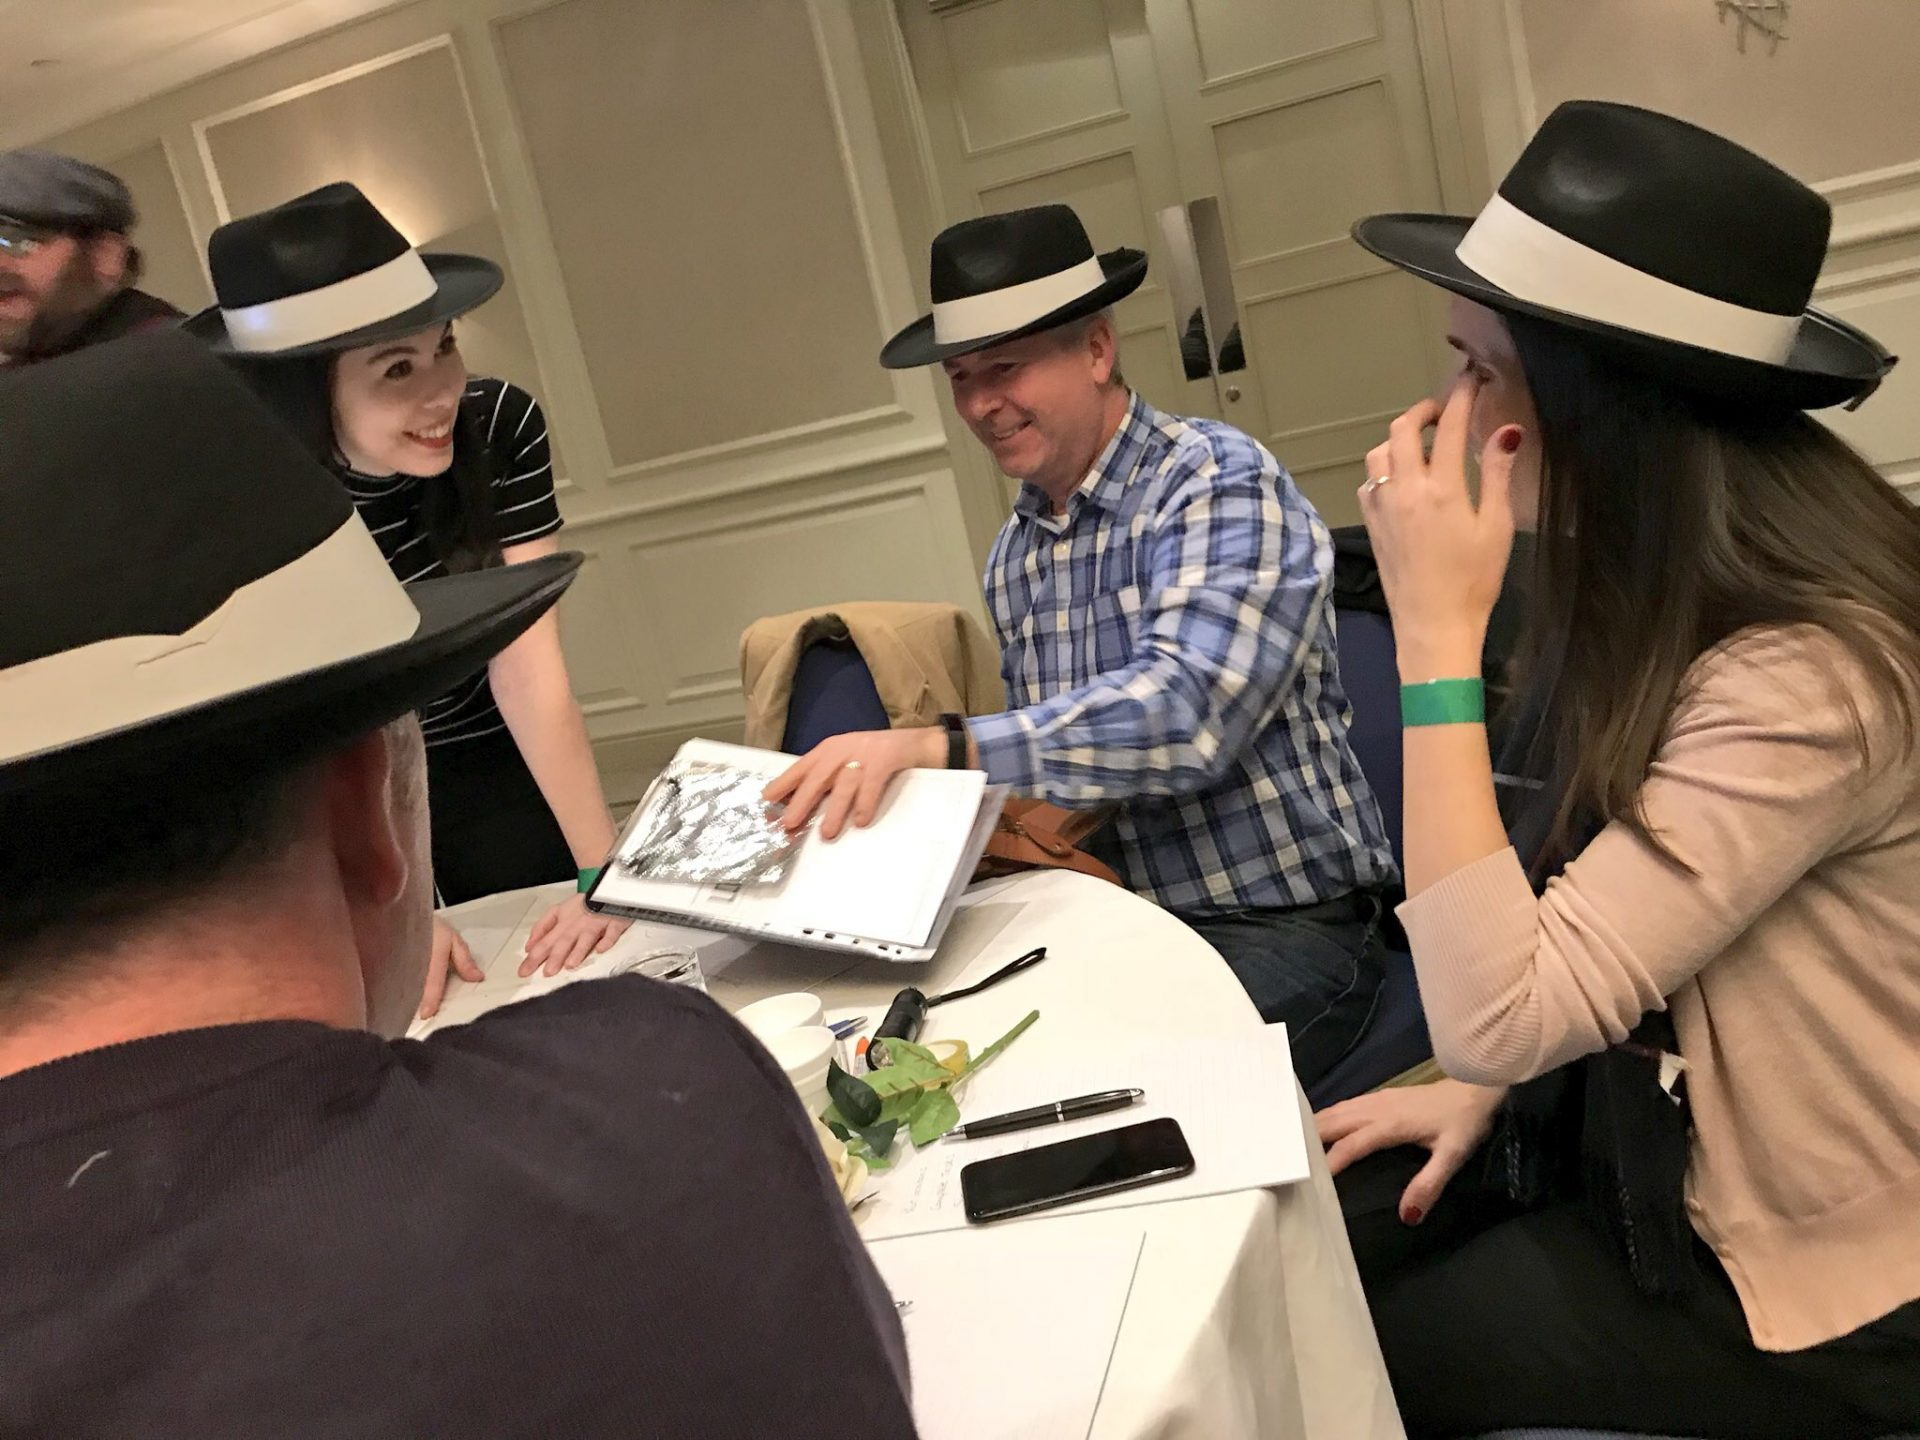 Teams wearing mob hats during their team bonding game with orangeworks.